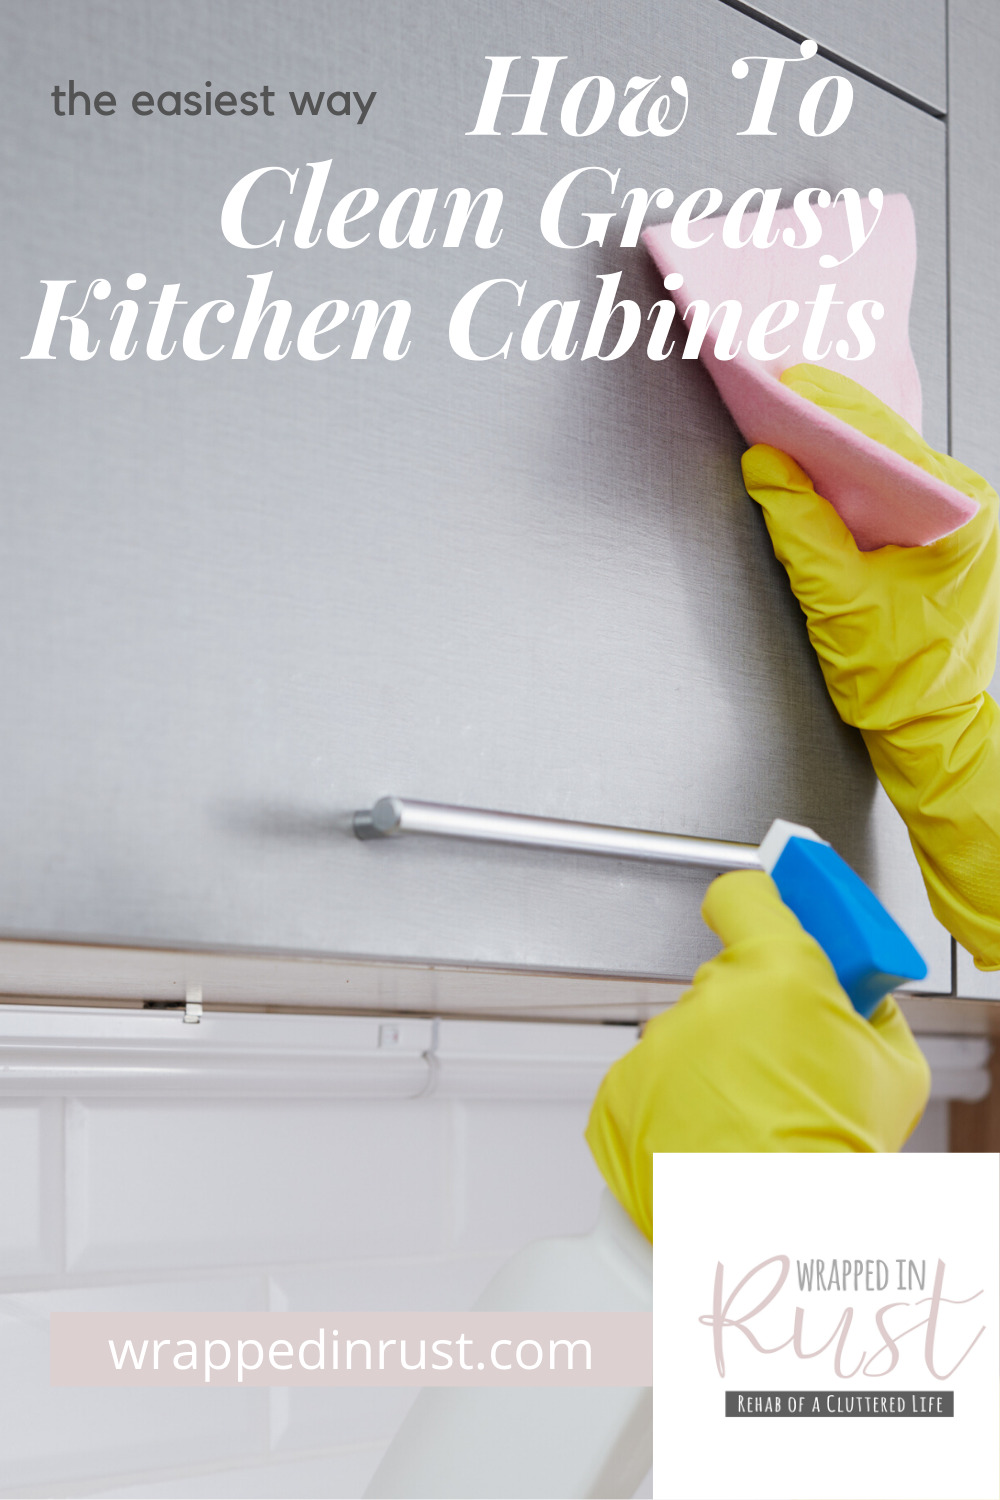 Life doesn't come with an instruction manual. But cleaning greasy cabinets does!  I have some great tips for how to clean your greasy cabinets that will leave them looking fresh and new. And the best part? You can do it with homemade cleaners made from household products. So, clean on! #cleaningcabinets101 #cleaningtips